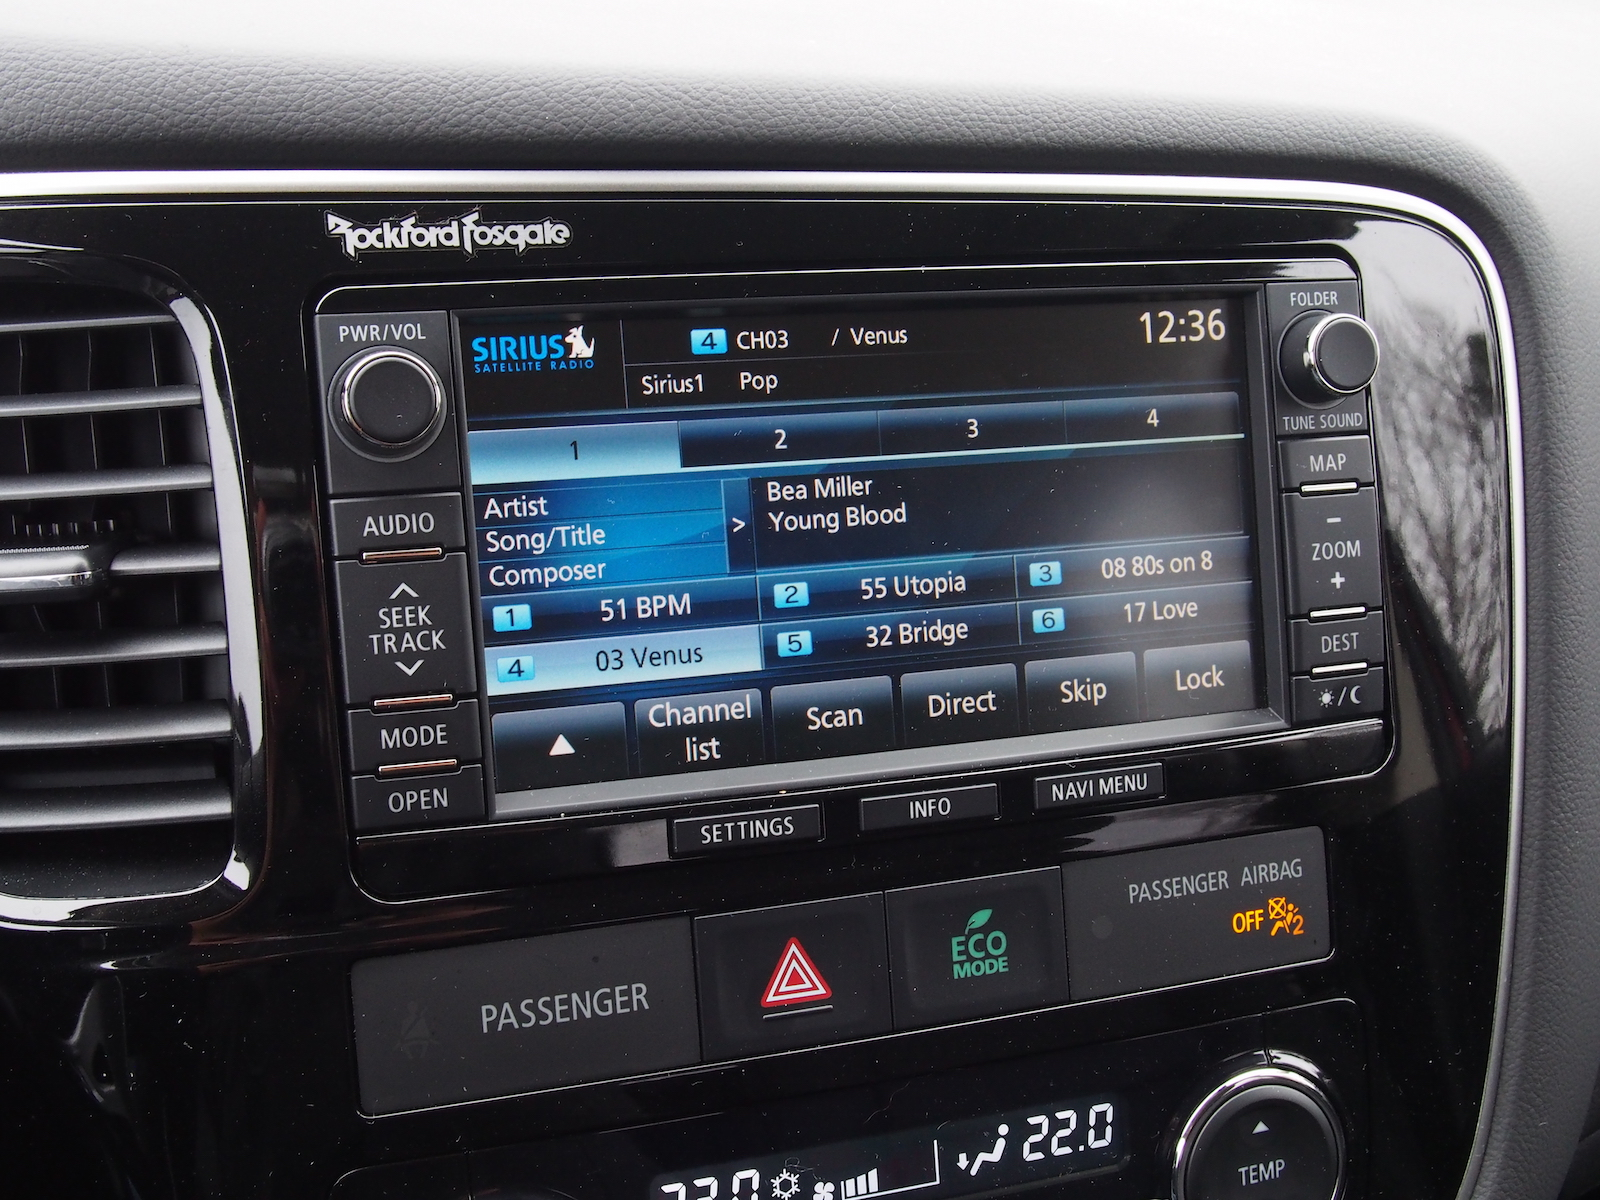 review 2015 mitsubishi outlander gt s awc canadian auto review rh canadianautoreview ca Mitsubishi Rockford Fosgate Stereo Systems Mitsubishi Lancer Evolution